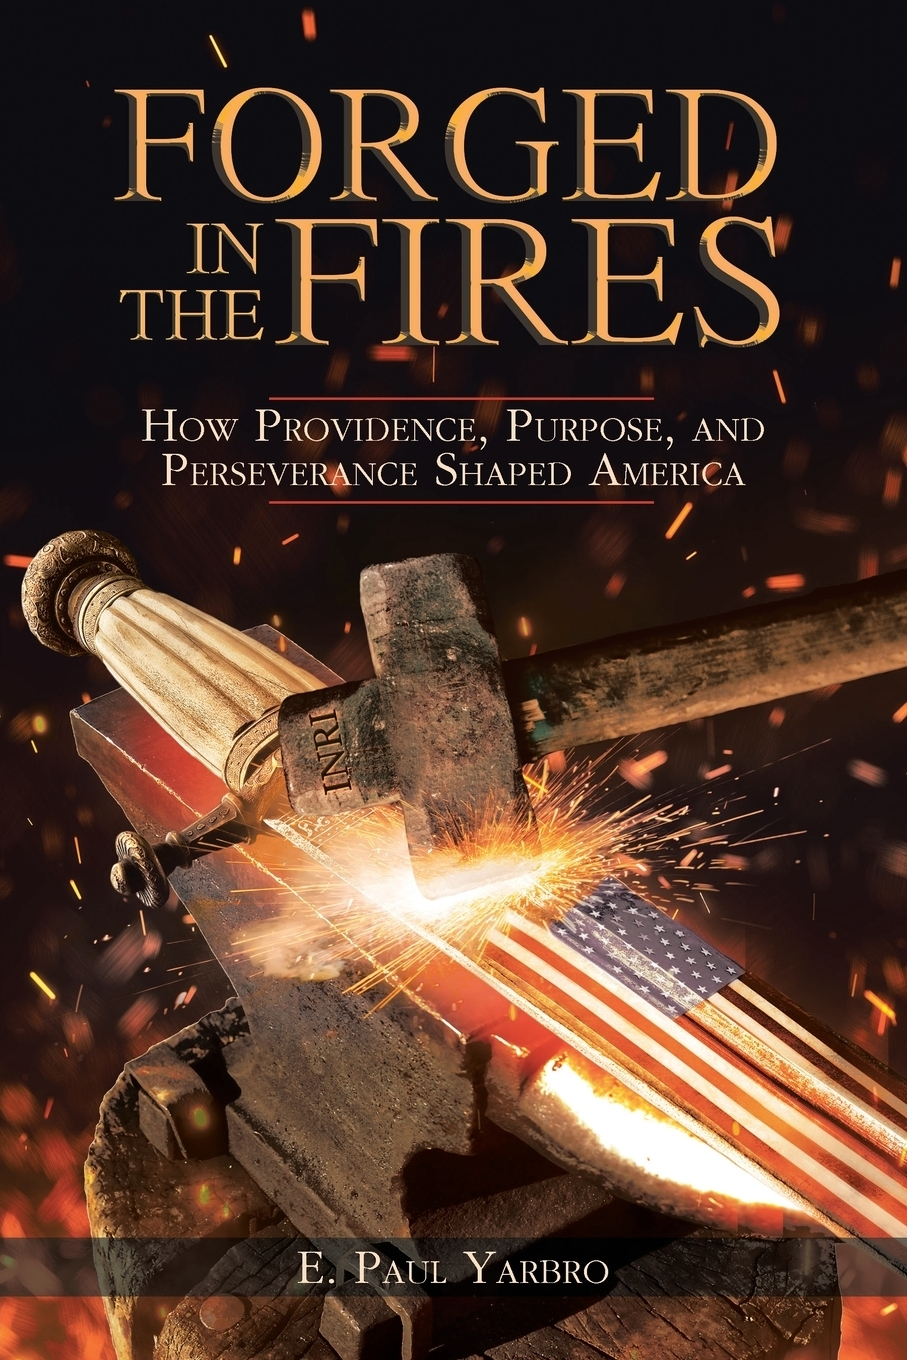 E. Paul Yarbro. Forged in the Fires. How Providence, Purpose, and Perseverance Shaped America